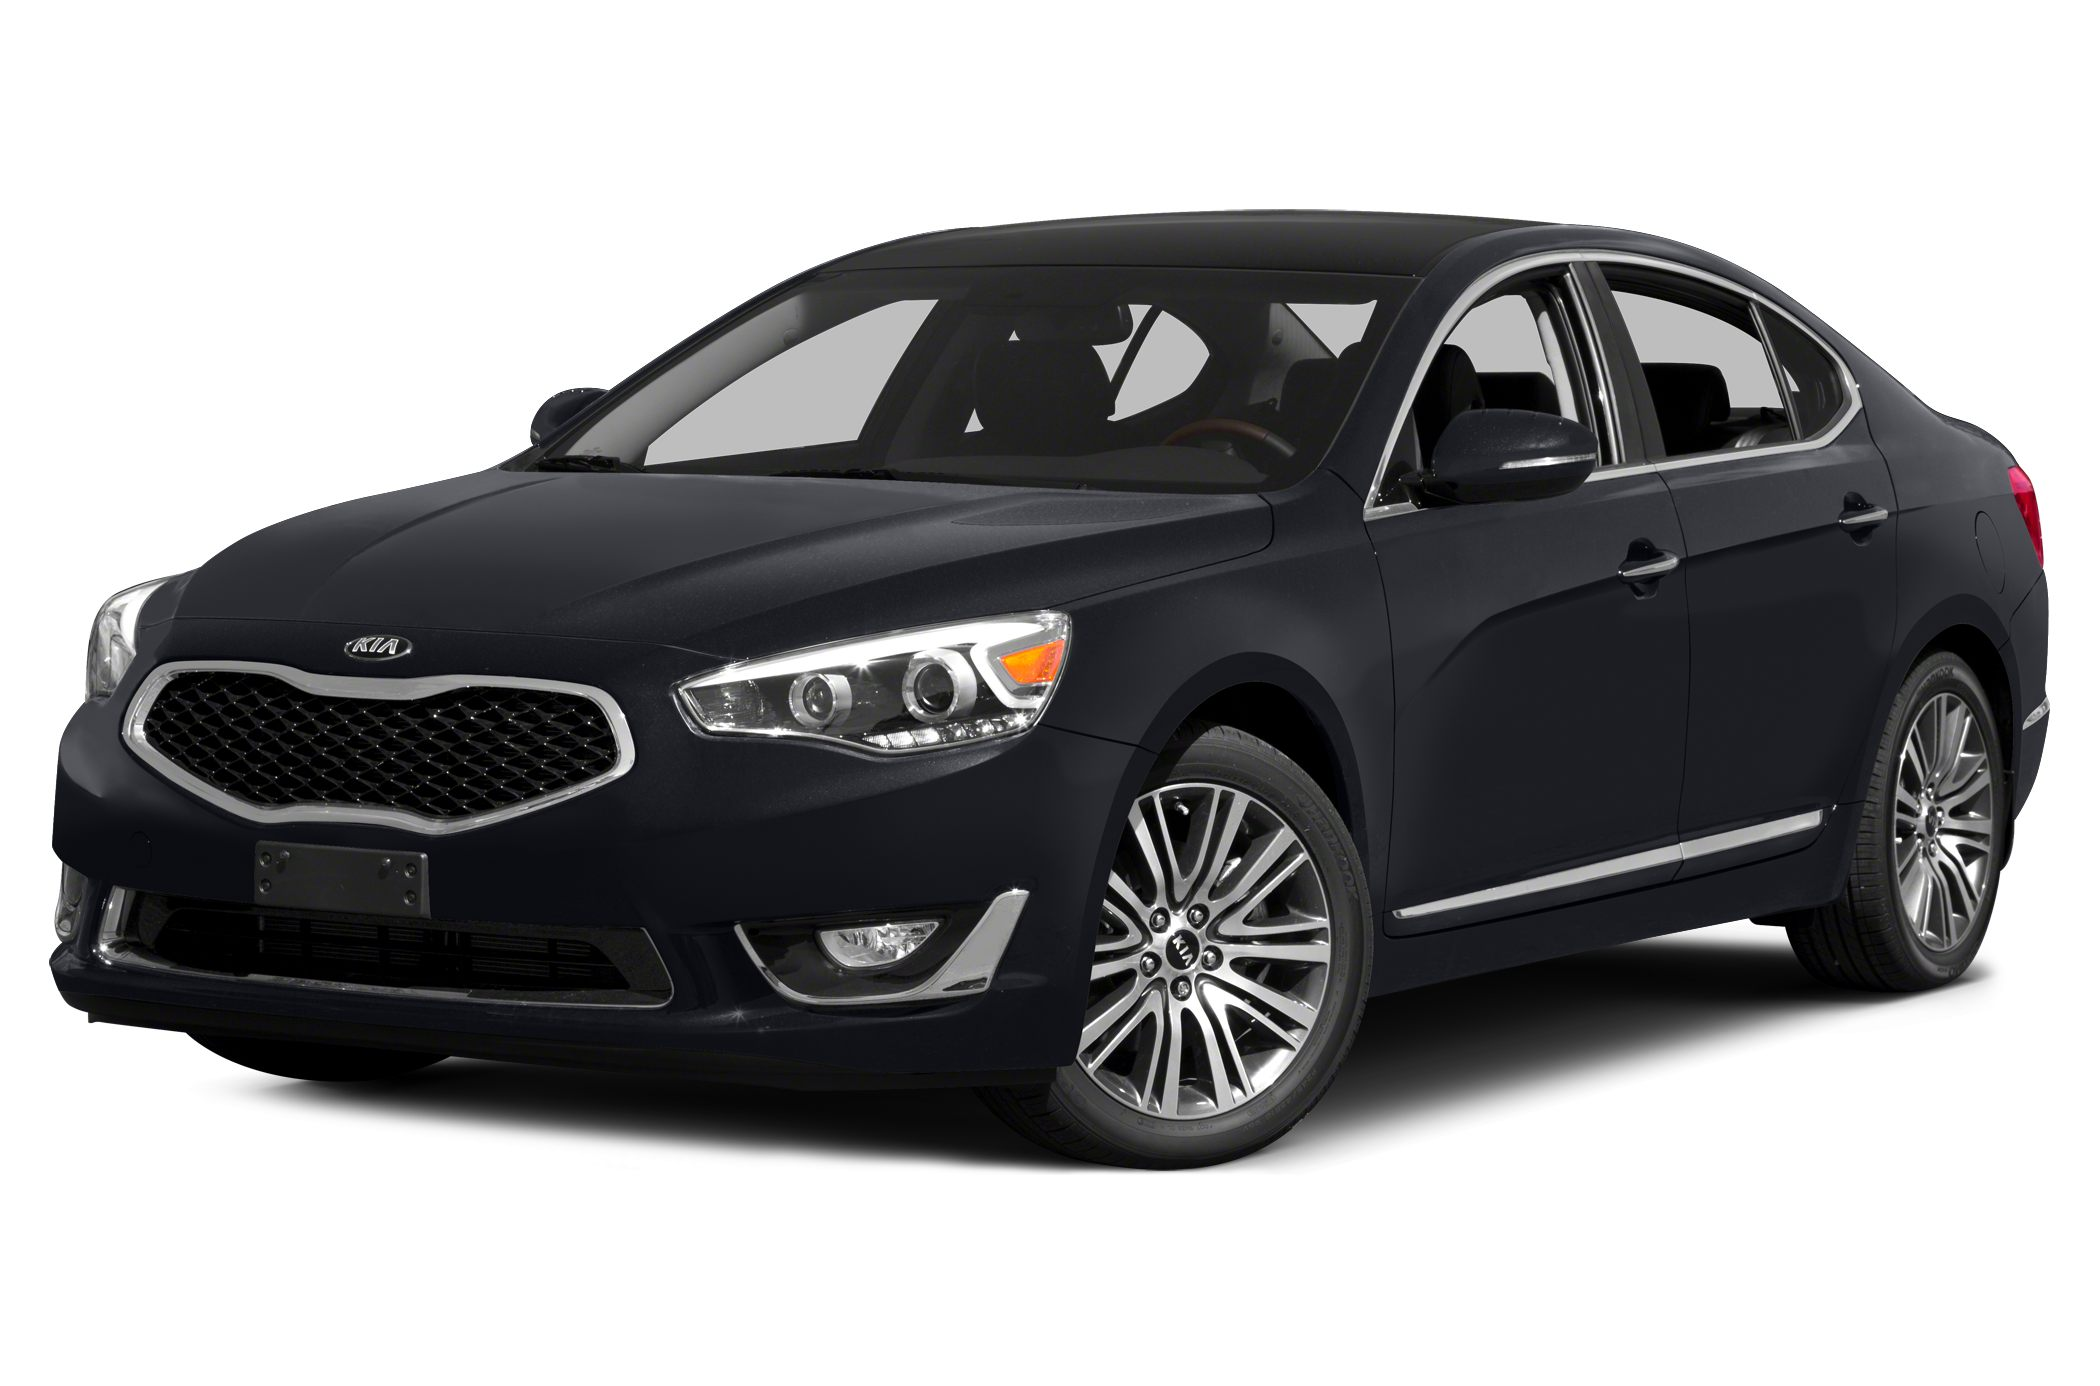 2015 Kia Cadenza Premium Sedan for sale in Staunton for $27,900 with 14,779 miles